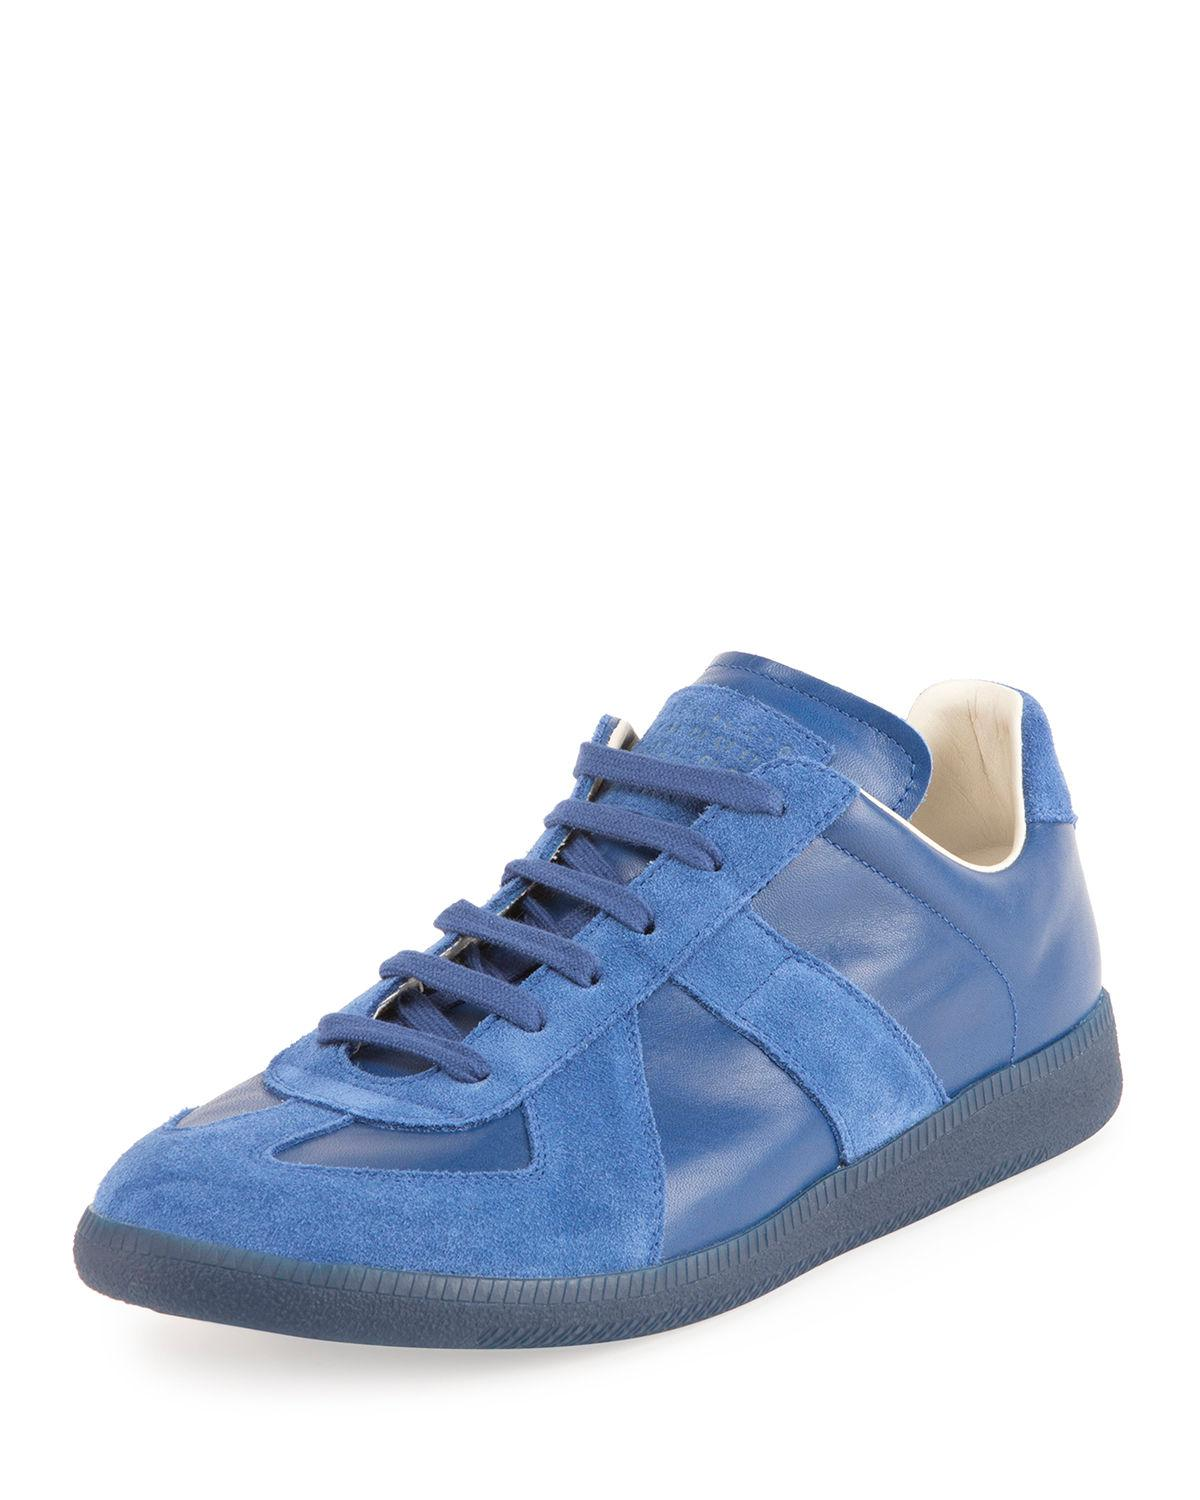 Replica Runner sneakers - Blue Maison Martin Margiela